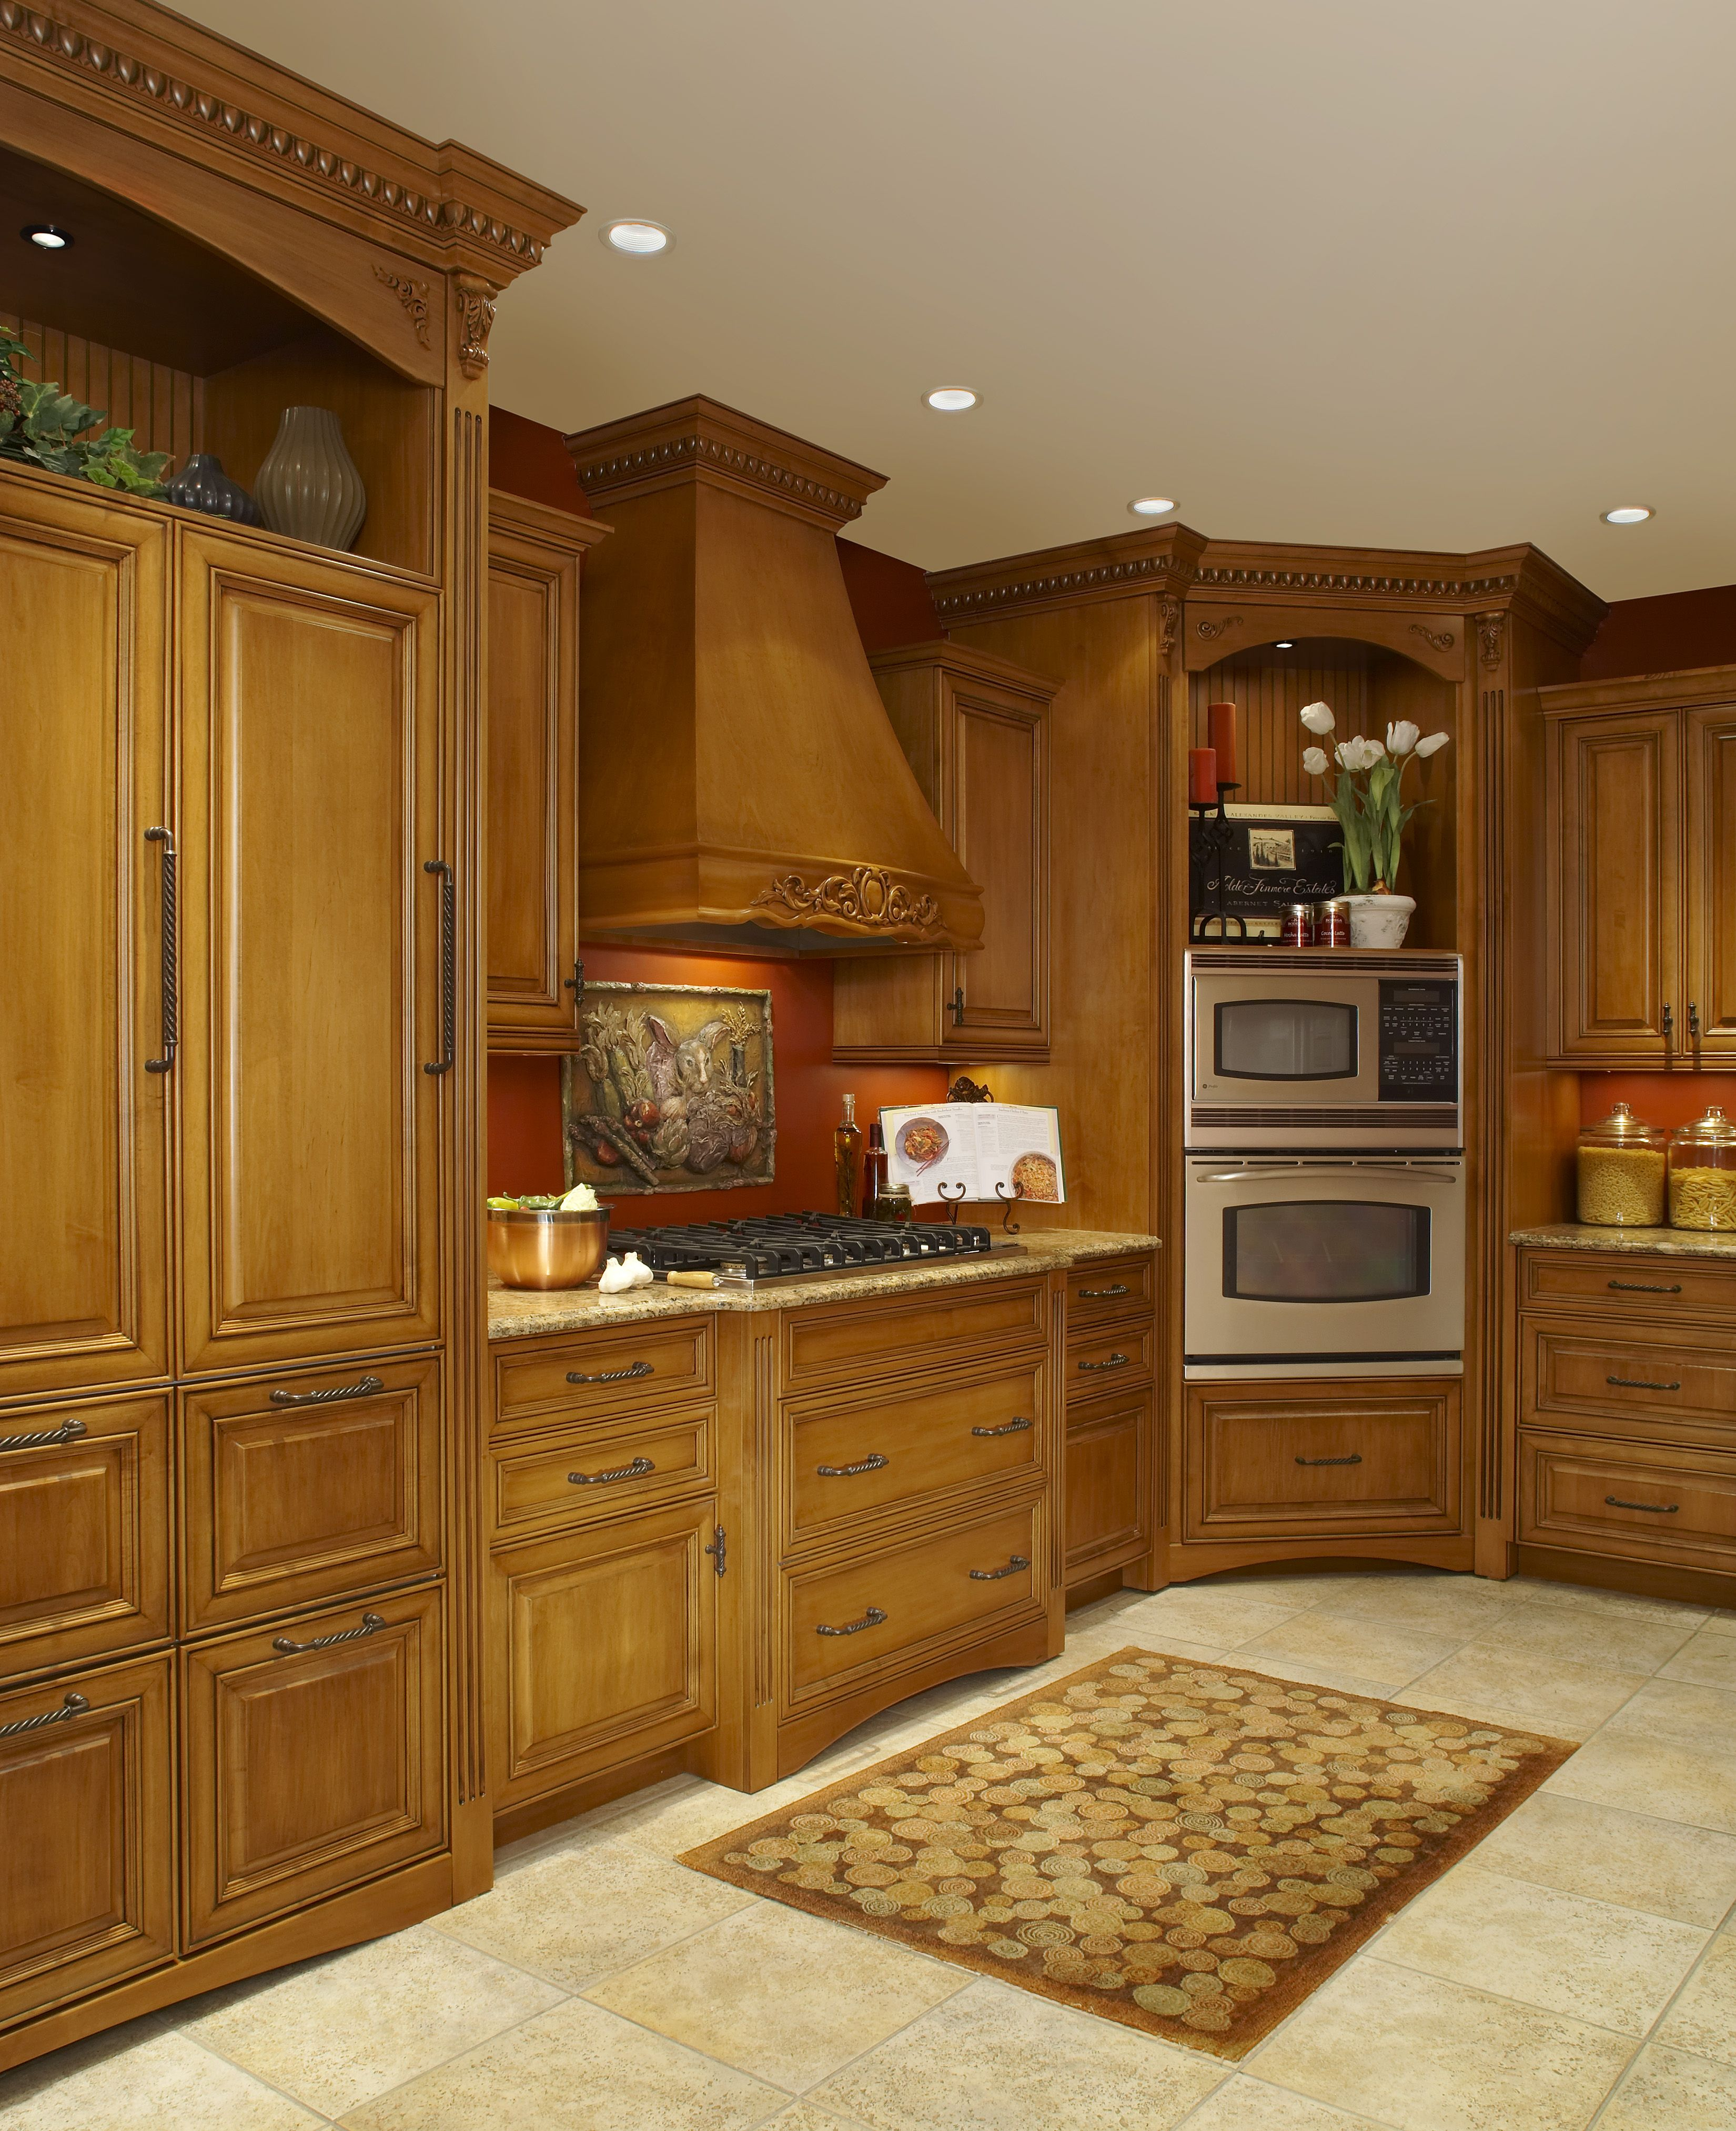 Nice Wooded Custom Cabinets Done By Lafata Located In Michigan Lafata Cabinets Custom Michi Custom Kitchens Design Custom Cabinets Custom Kitchen Cabinets